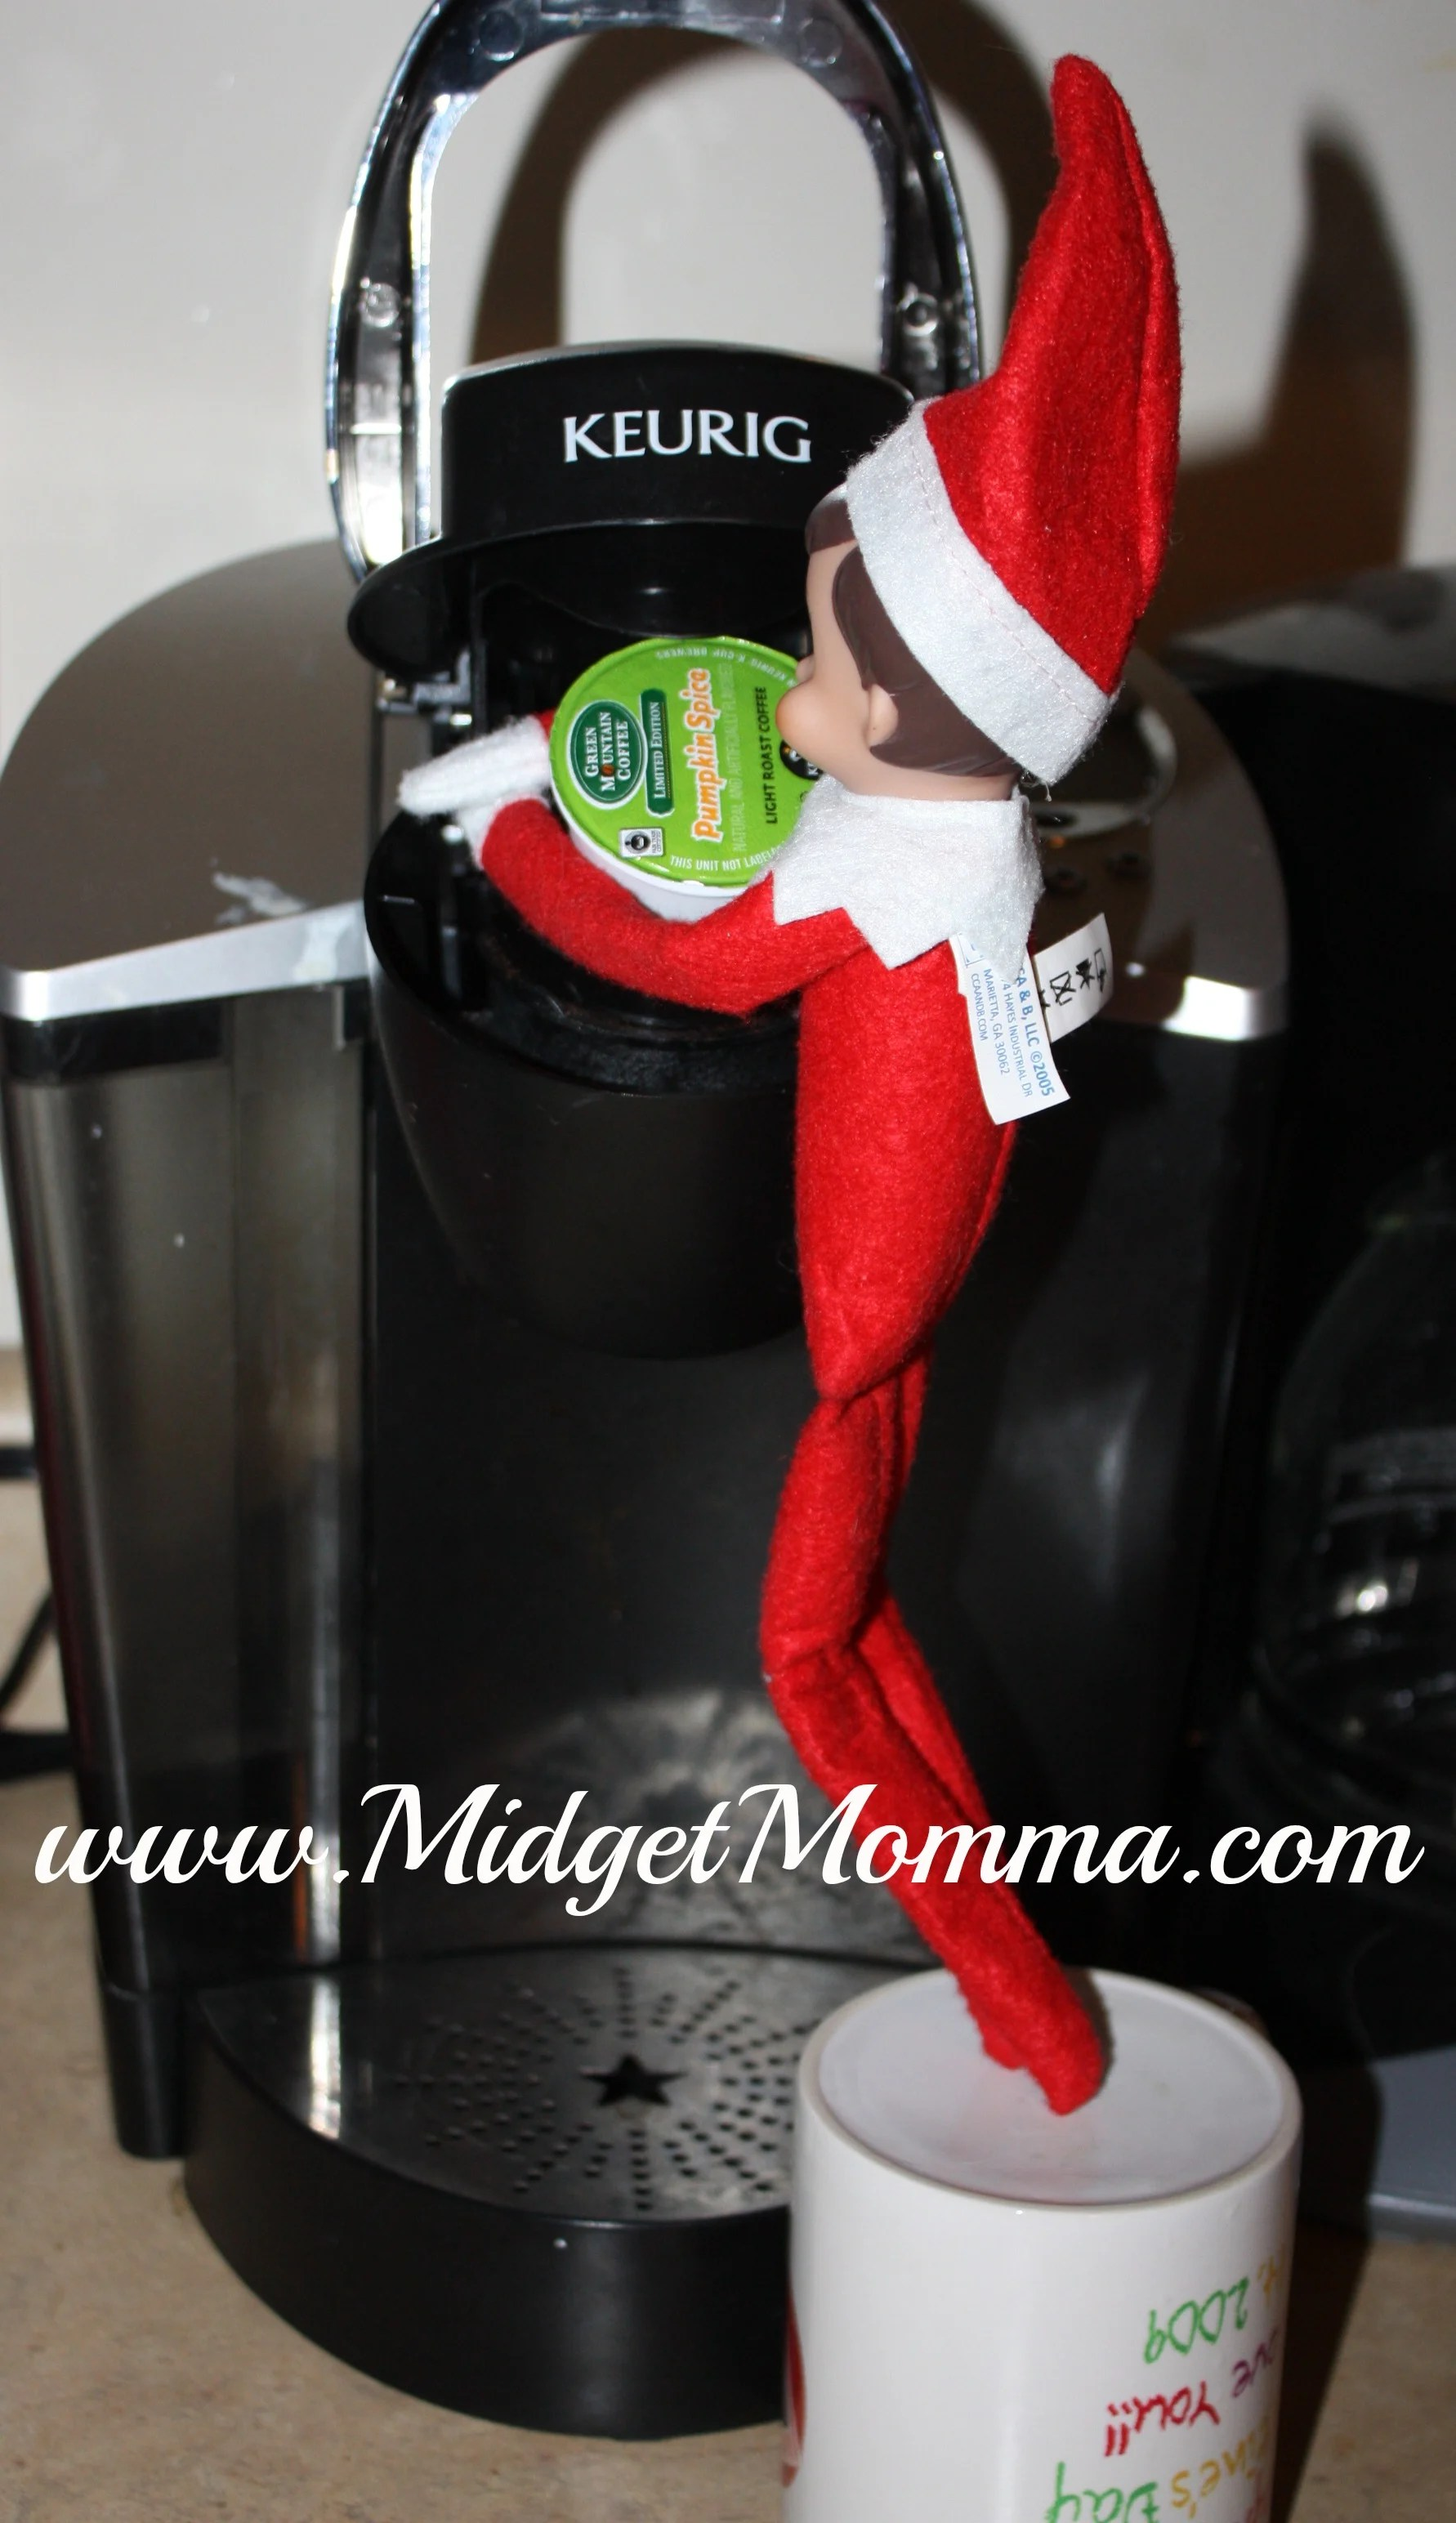 Elf on the Shelf Boy Makes Coffee in mom's Keurig this year is a great Elf on the Shelf Prank or idea! Check out this and tons of other amazing Quick Elf on the Shelf Ideas!